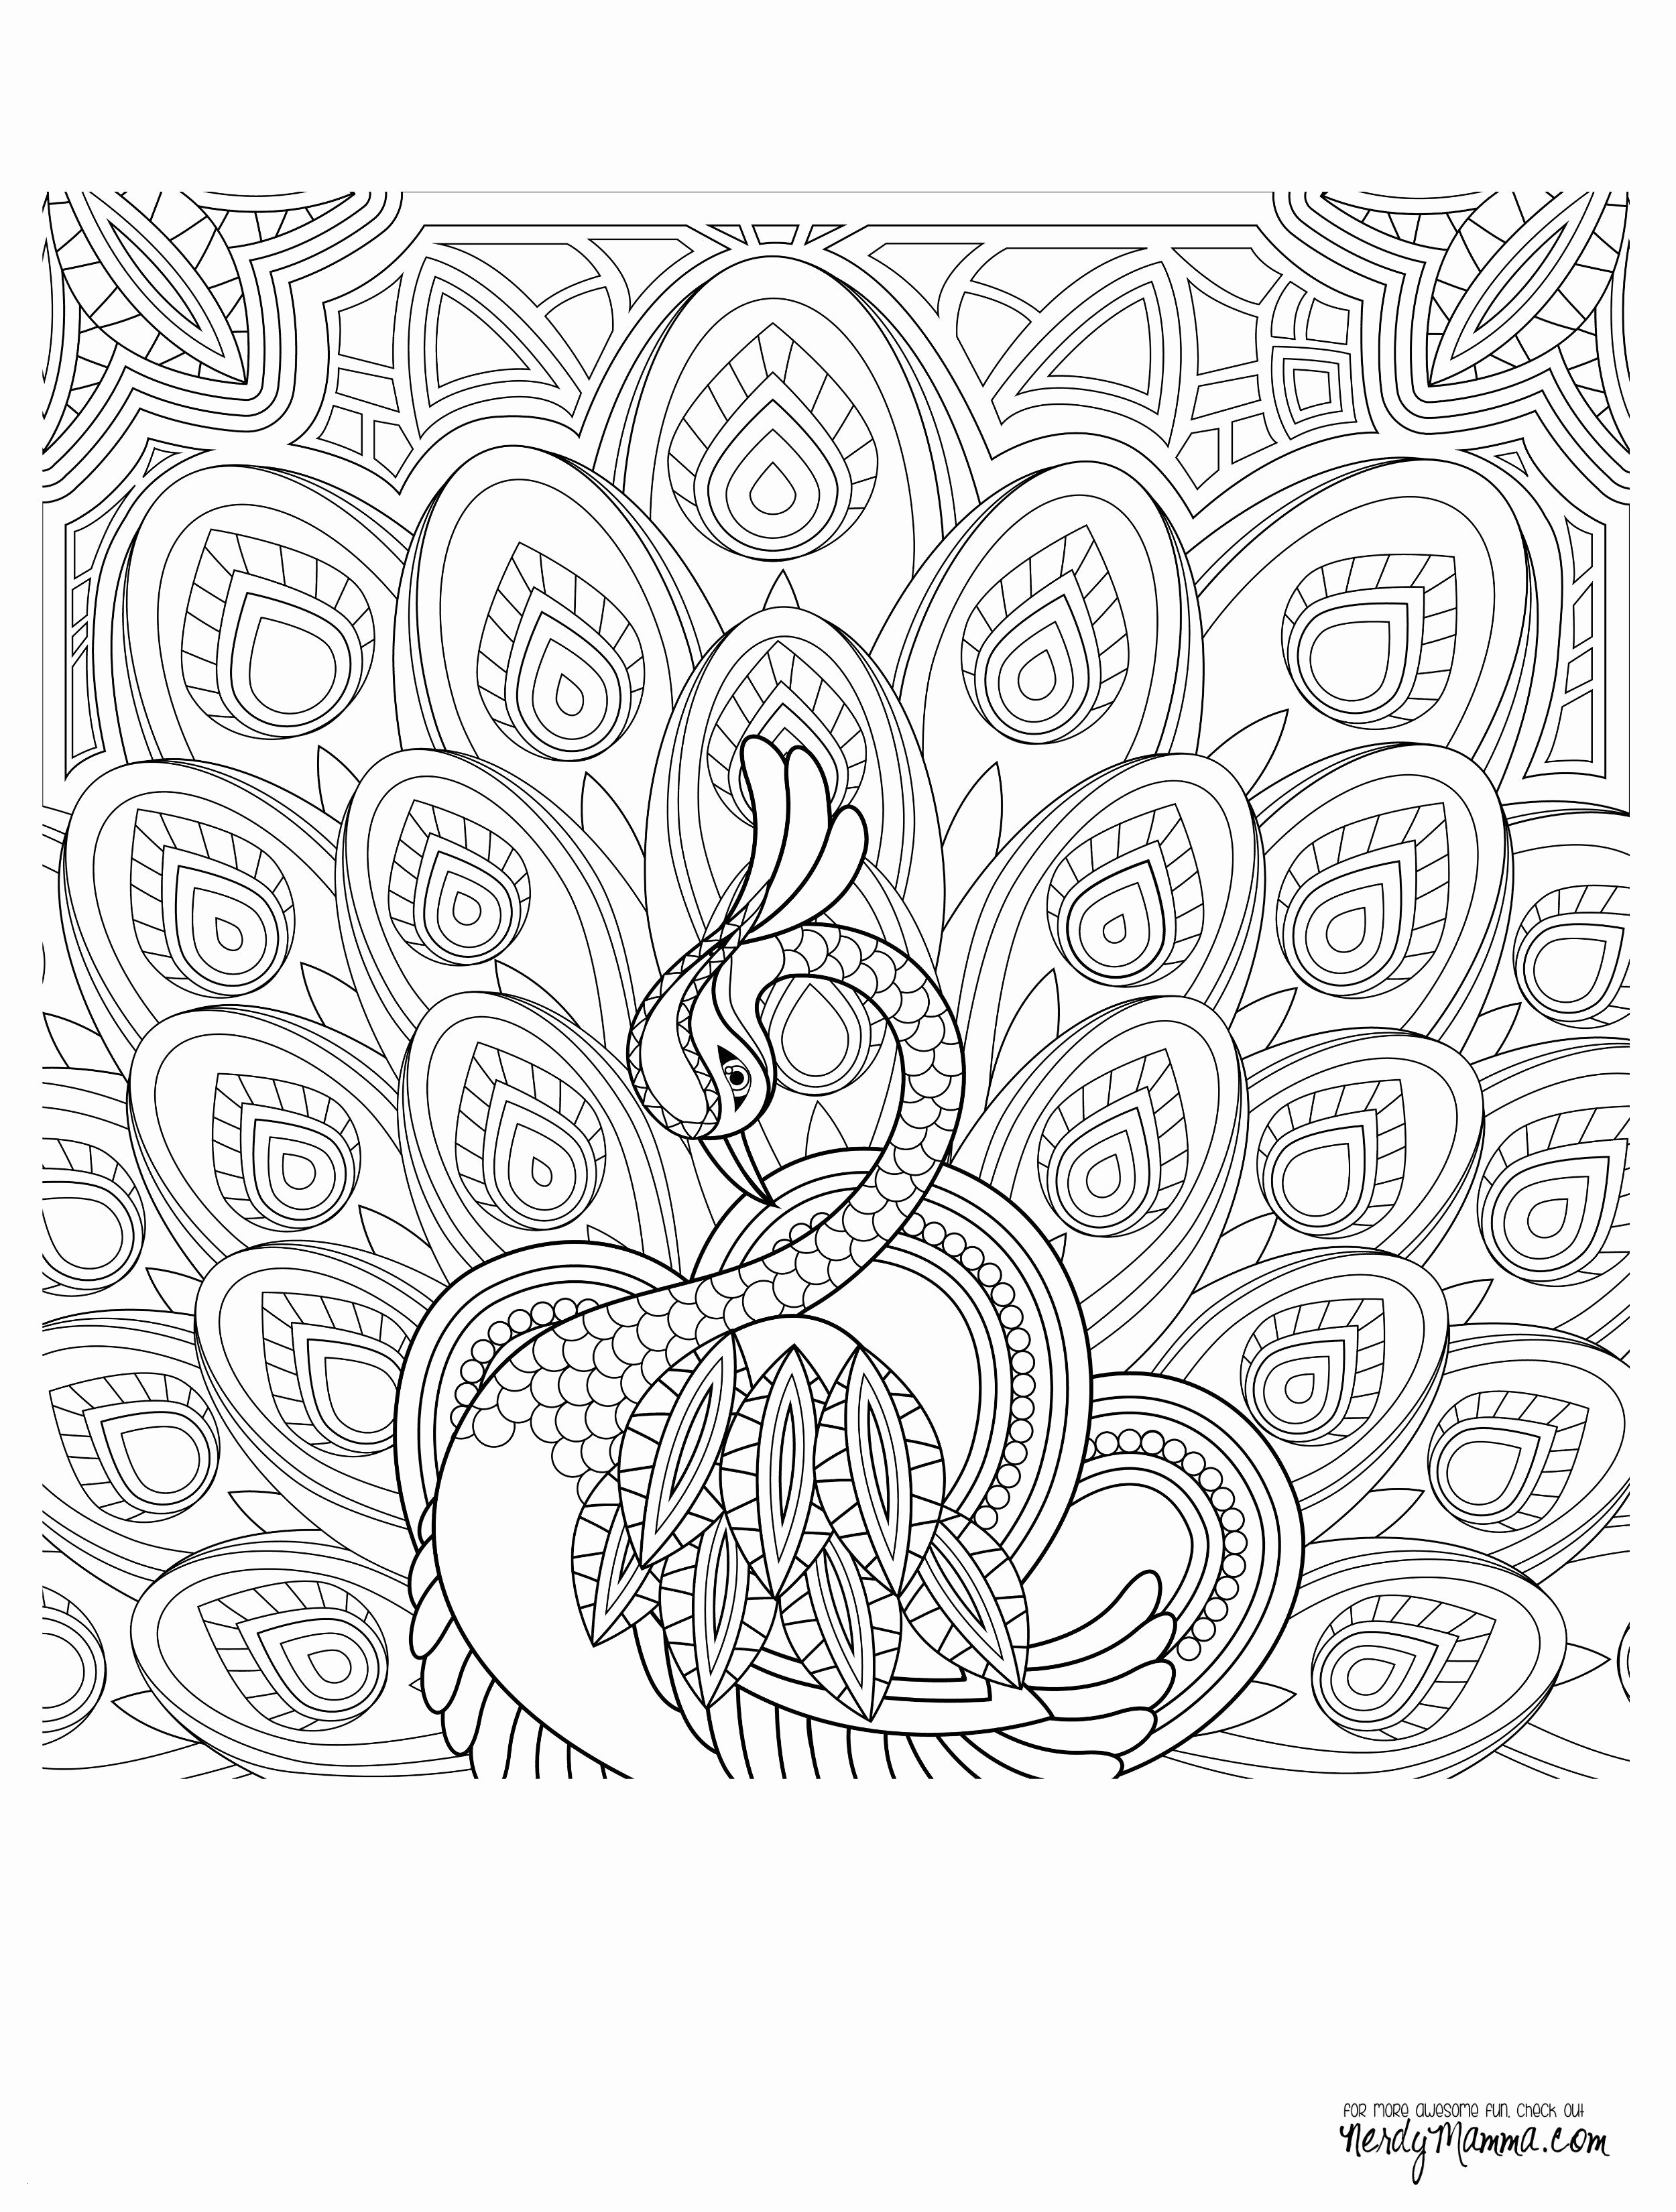 special olympics coloring pages Collection-8 X 10 Printable Coloring Pages Best Special Olympics Coloring Pages Printable Easy Draw Pig 1-c